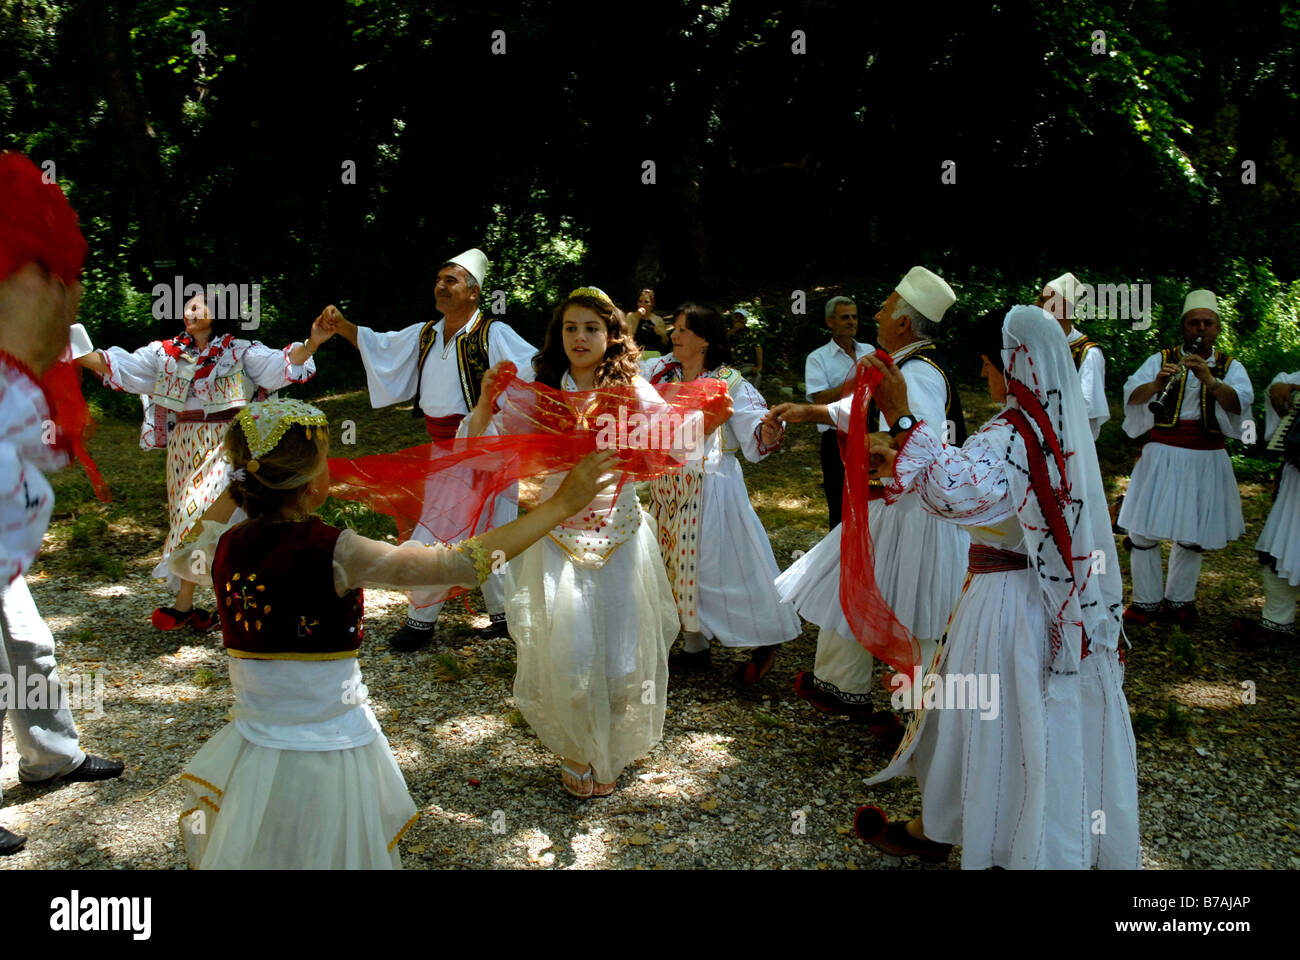 Dancers at The Festival of the Children - Stock Image